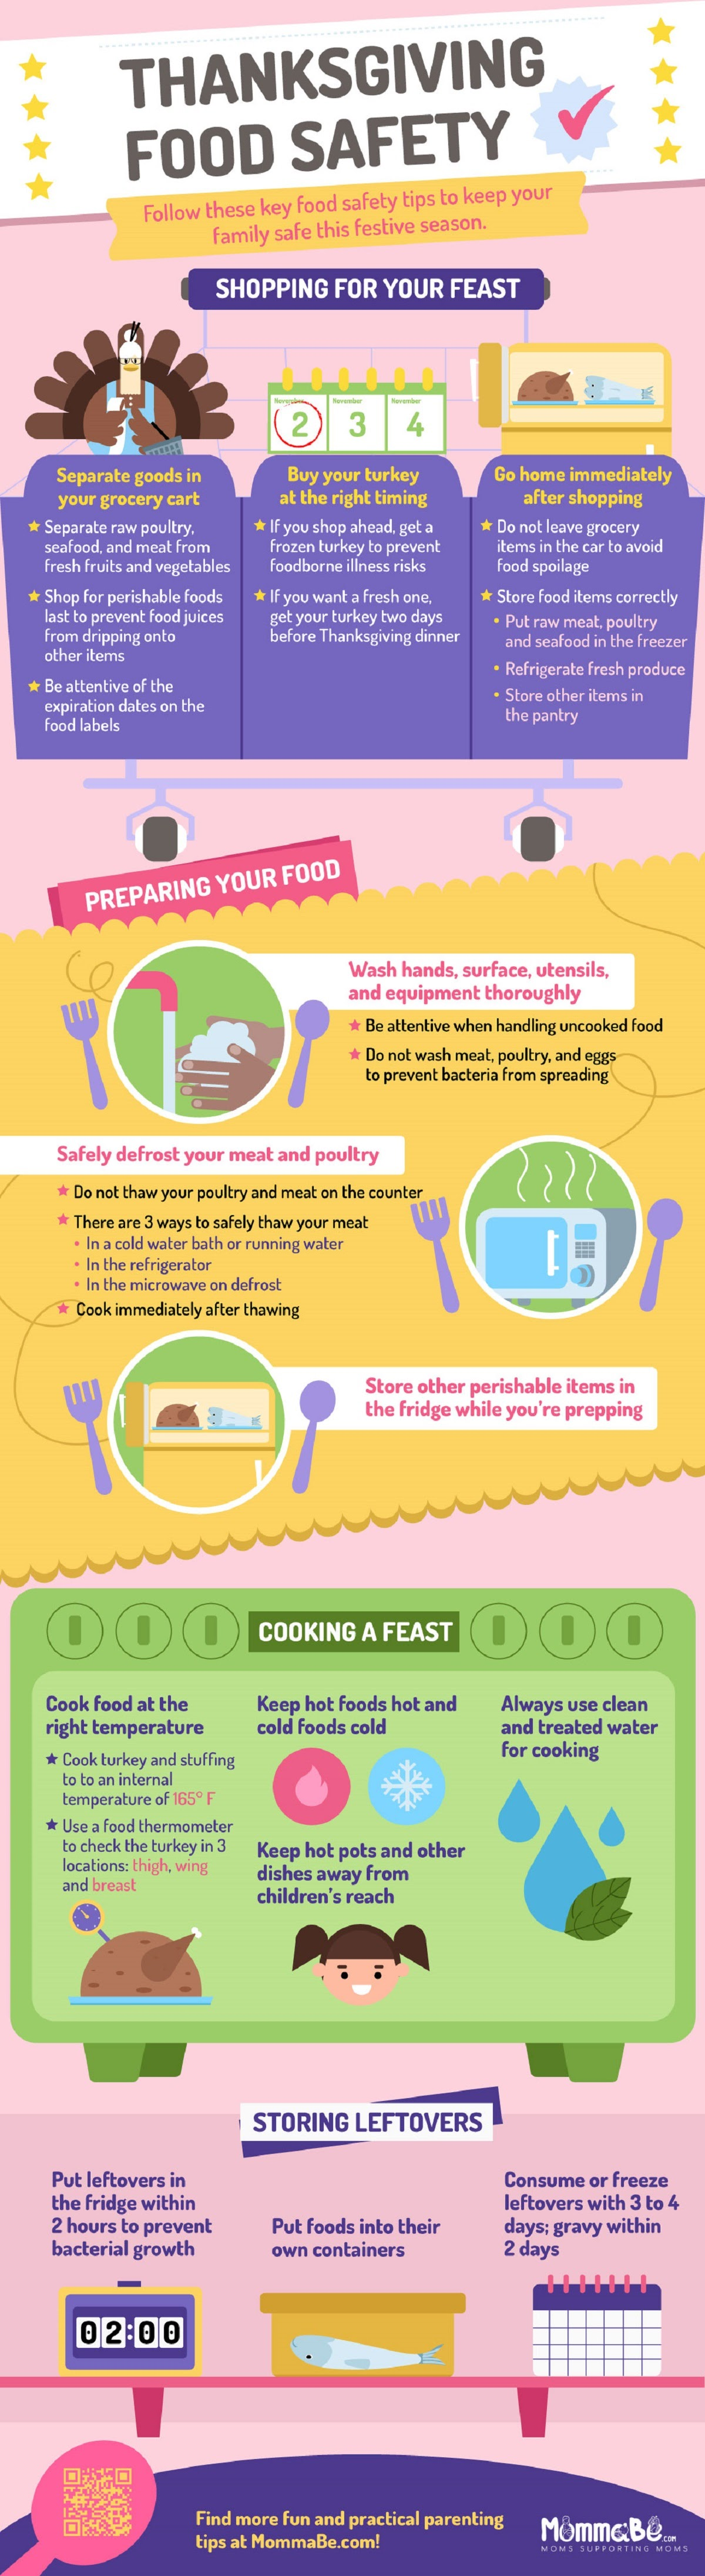 thanksgiving-food-safety-infographic